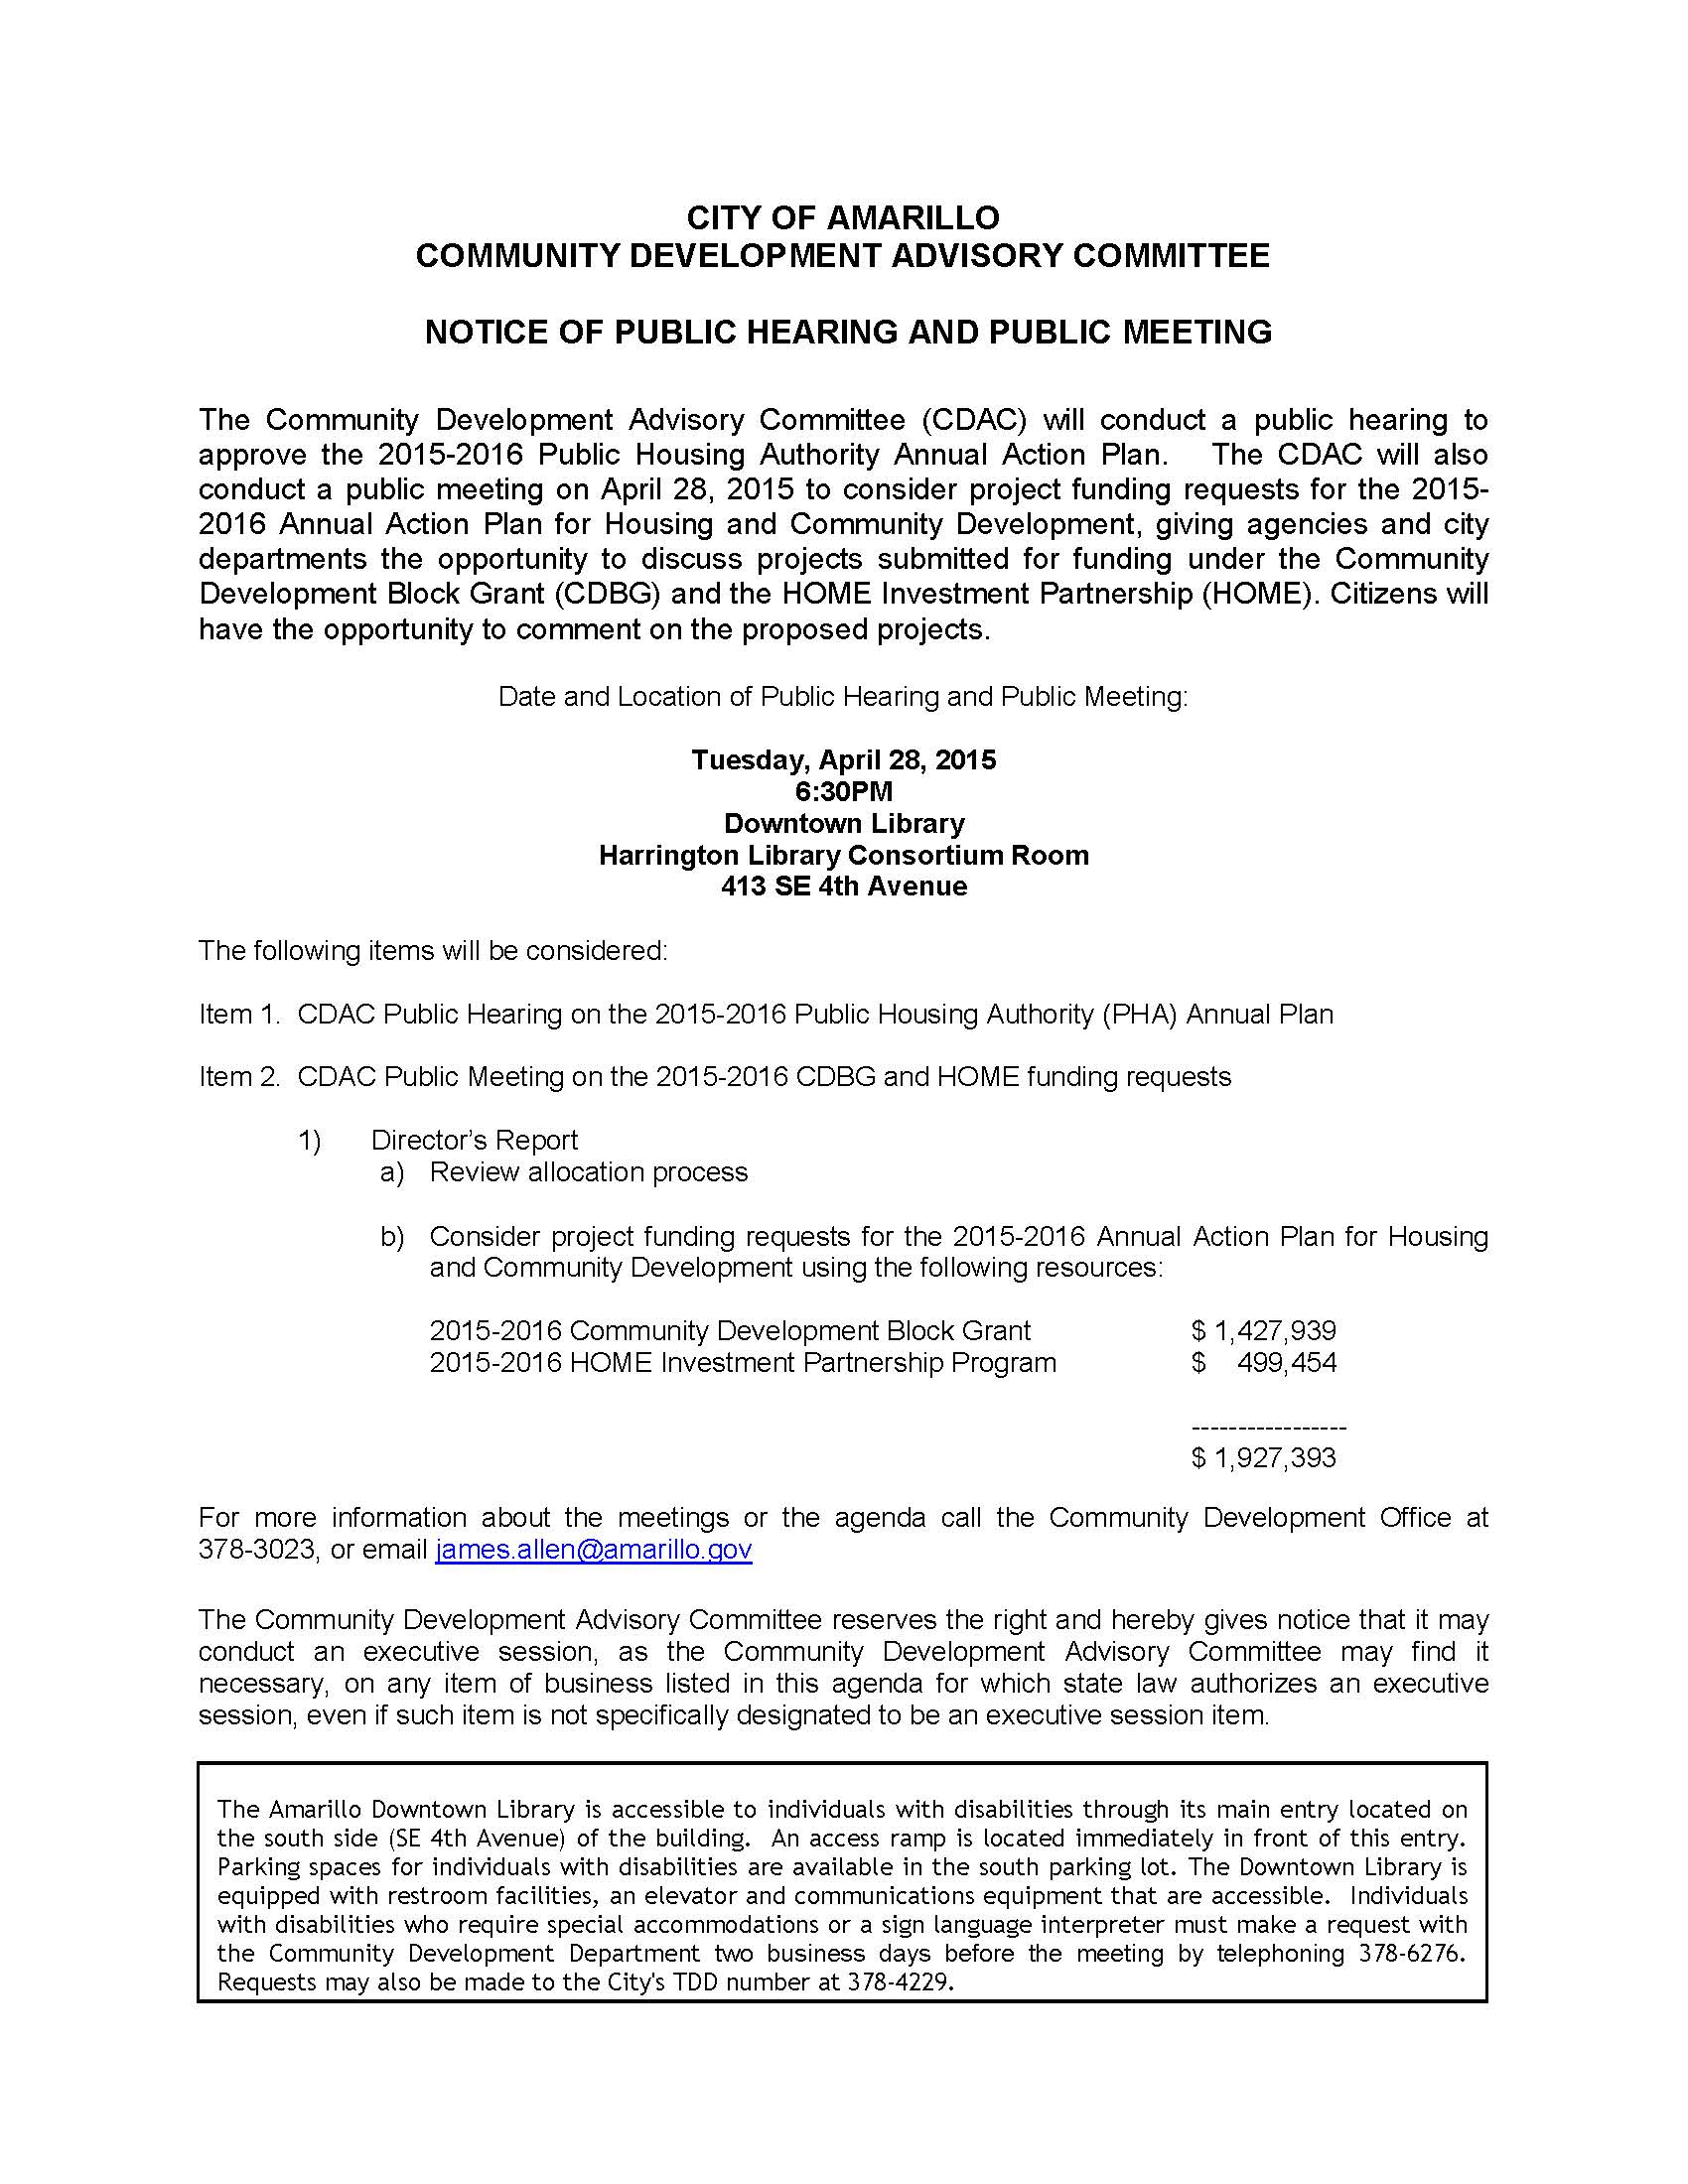 4-28 Notice of Public Meeting_Page_1